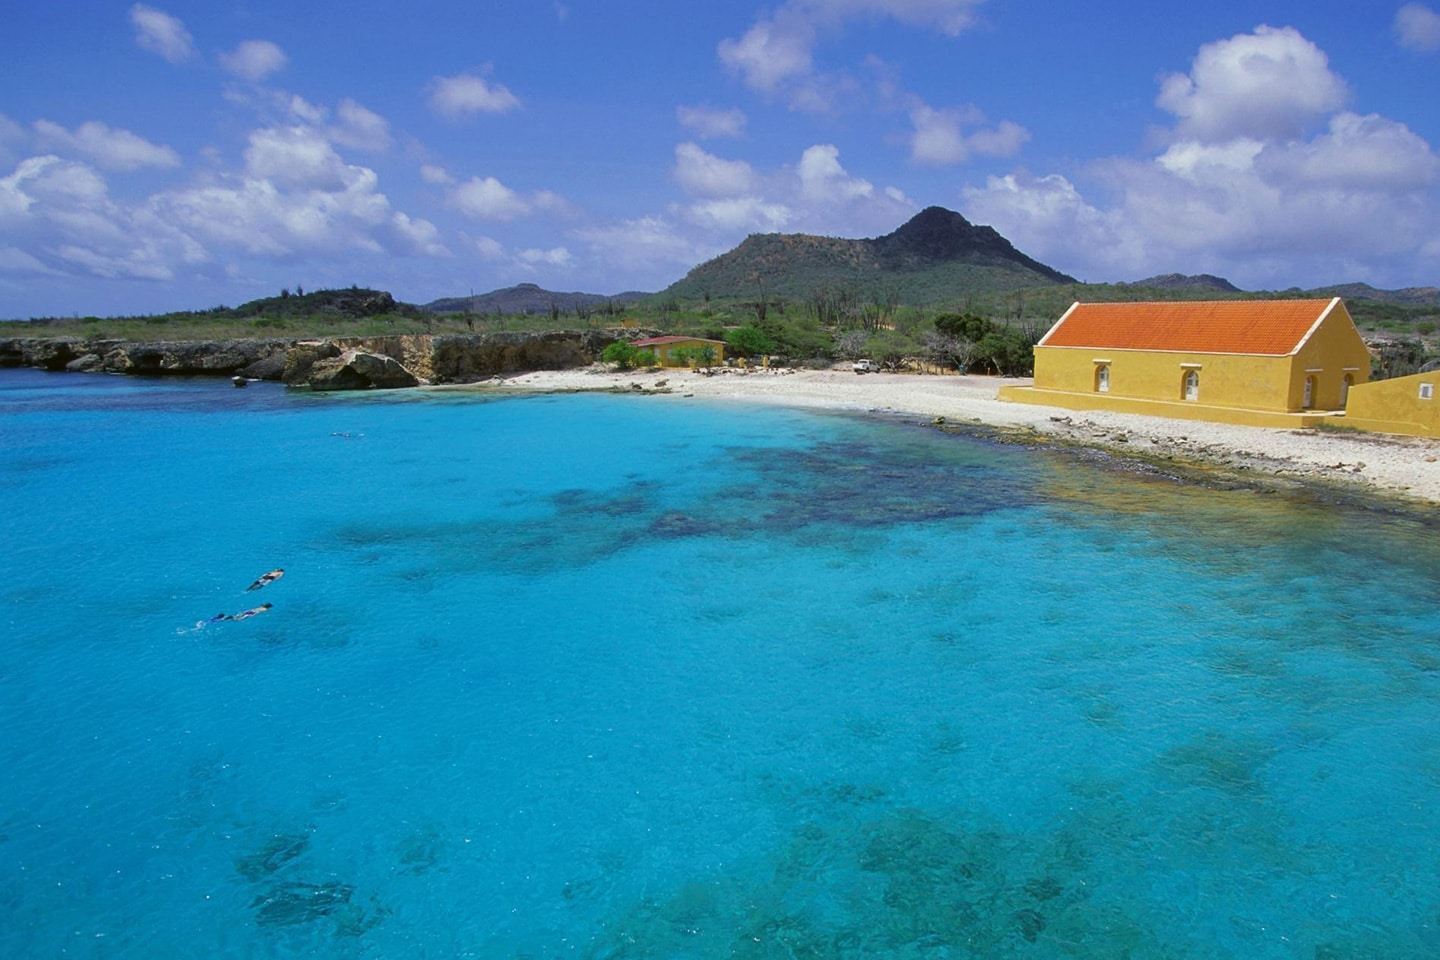 Sunny summer weather in Bonaire